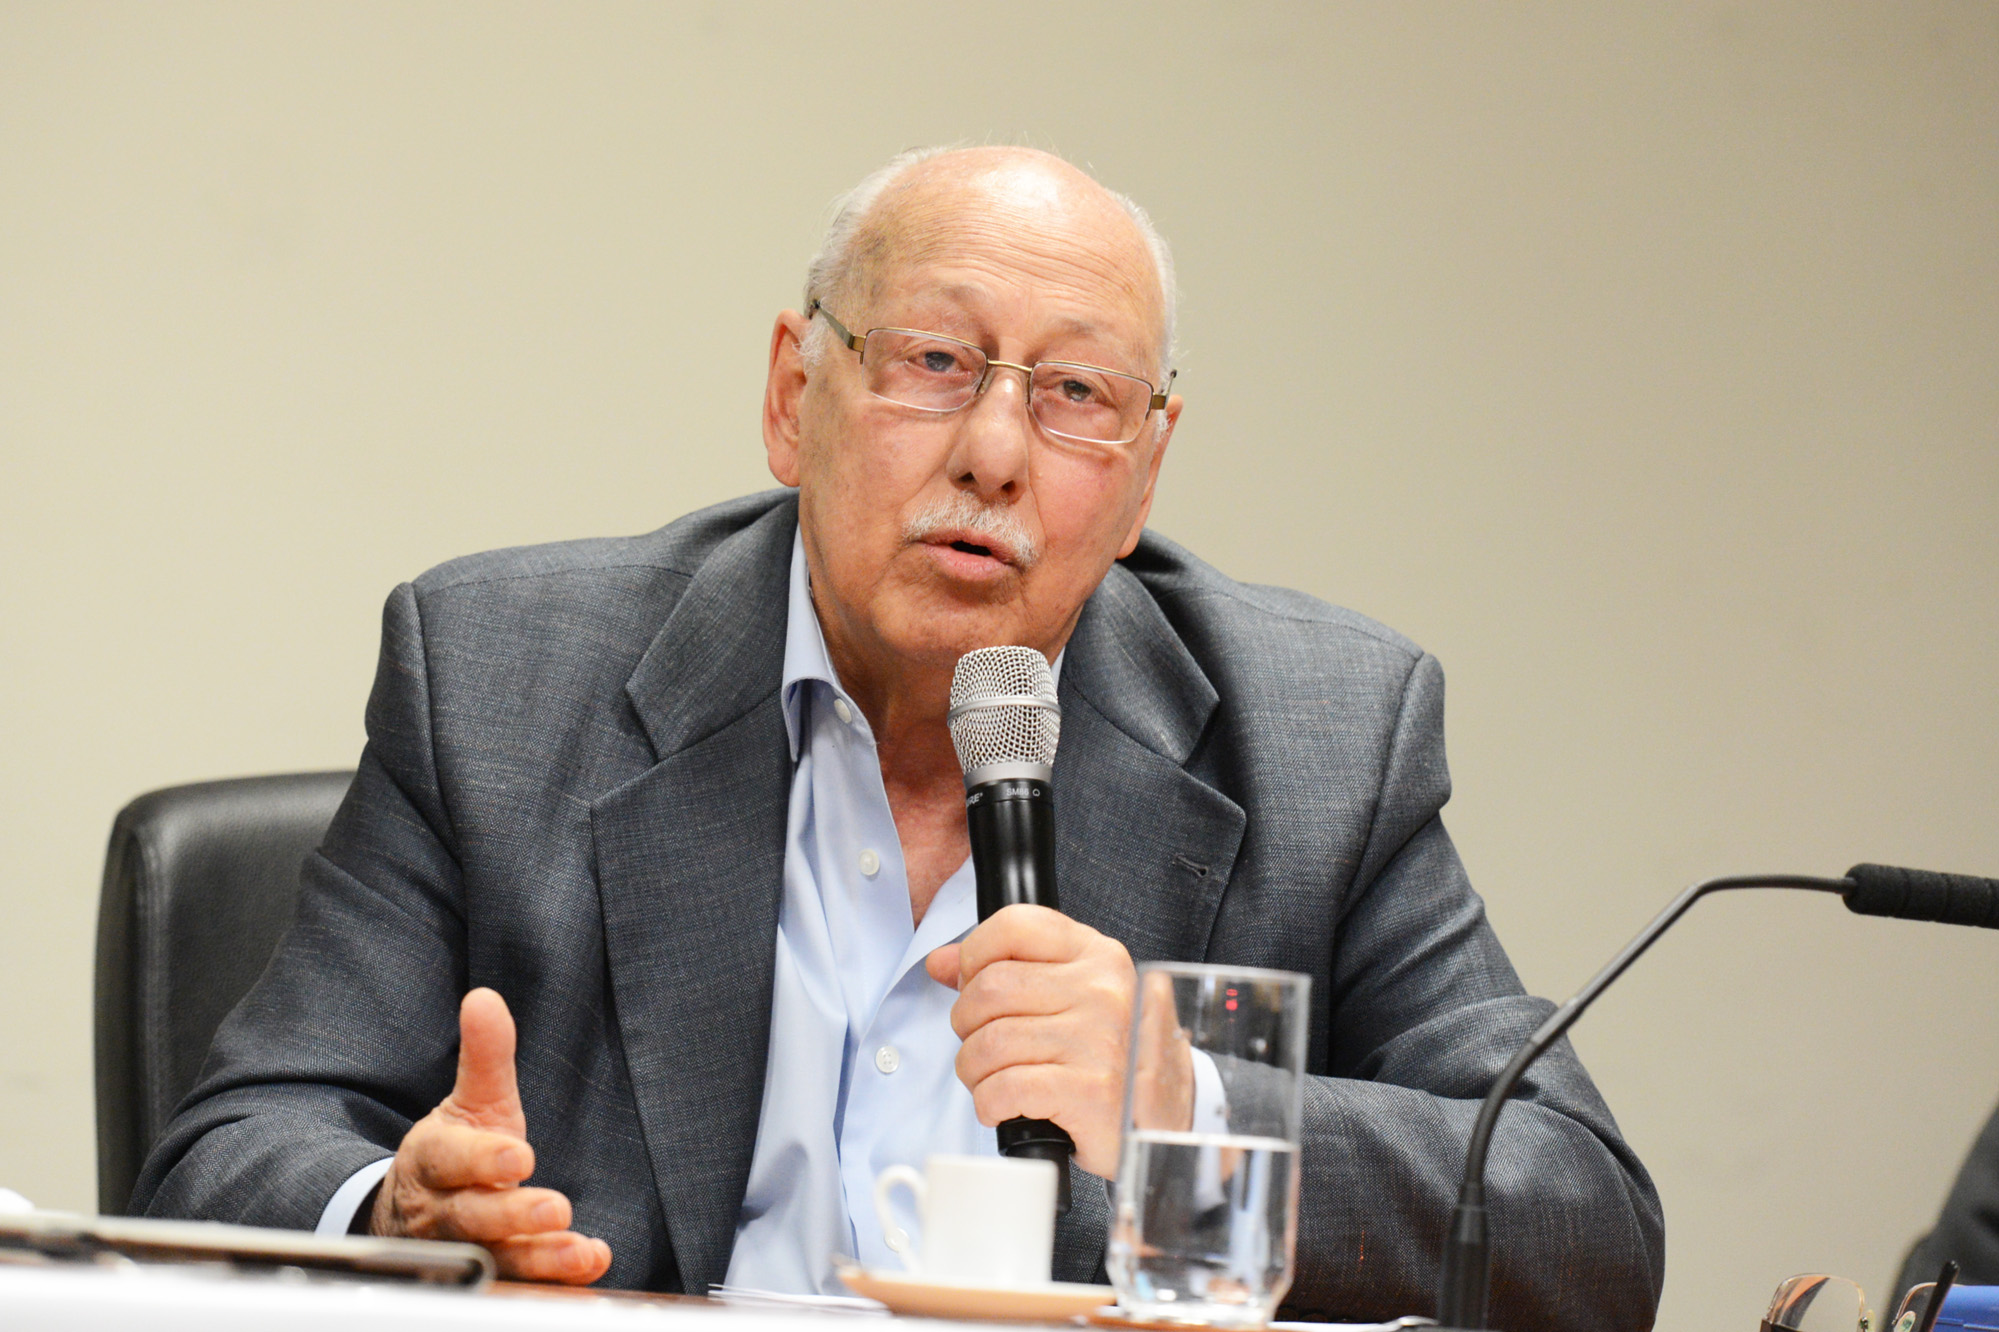 Walter Colli<a style='float:right' href='https://www3.al.sp.gov.br/repositorio/noticia/N-09-2014/fg165046.jpg' target=_blank><img src='/_img/material-file-download-white.png' width='14px' alt='Clique para baixar a imagem'></a>